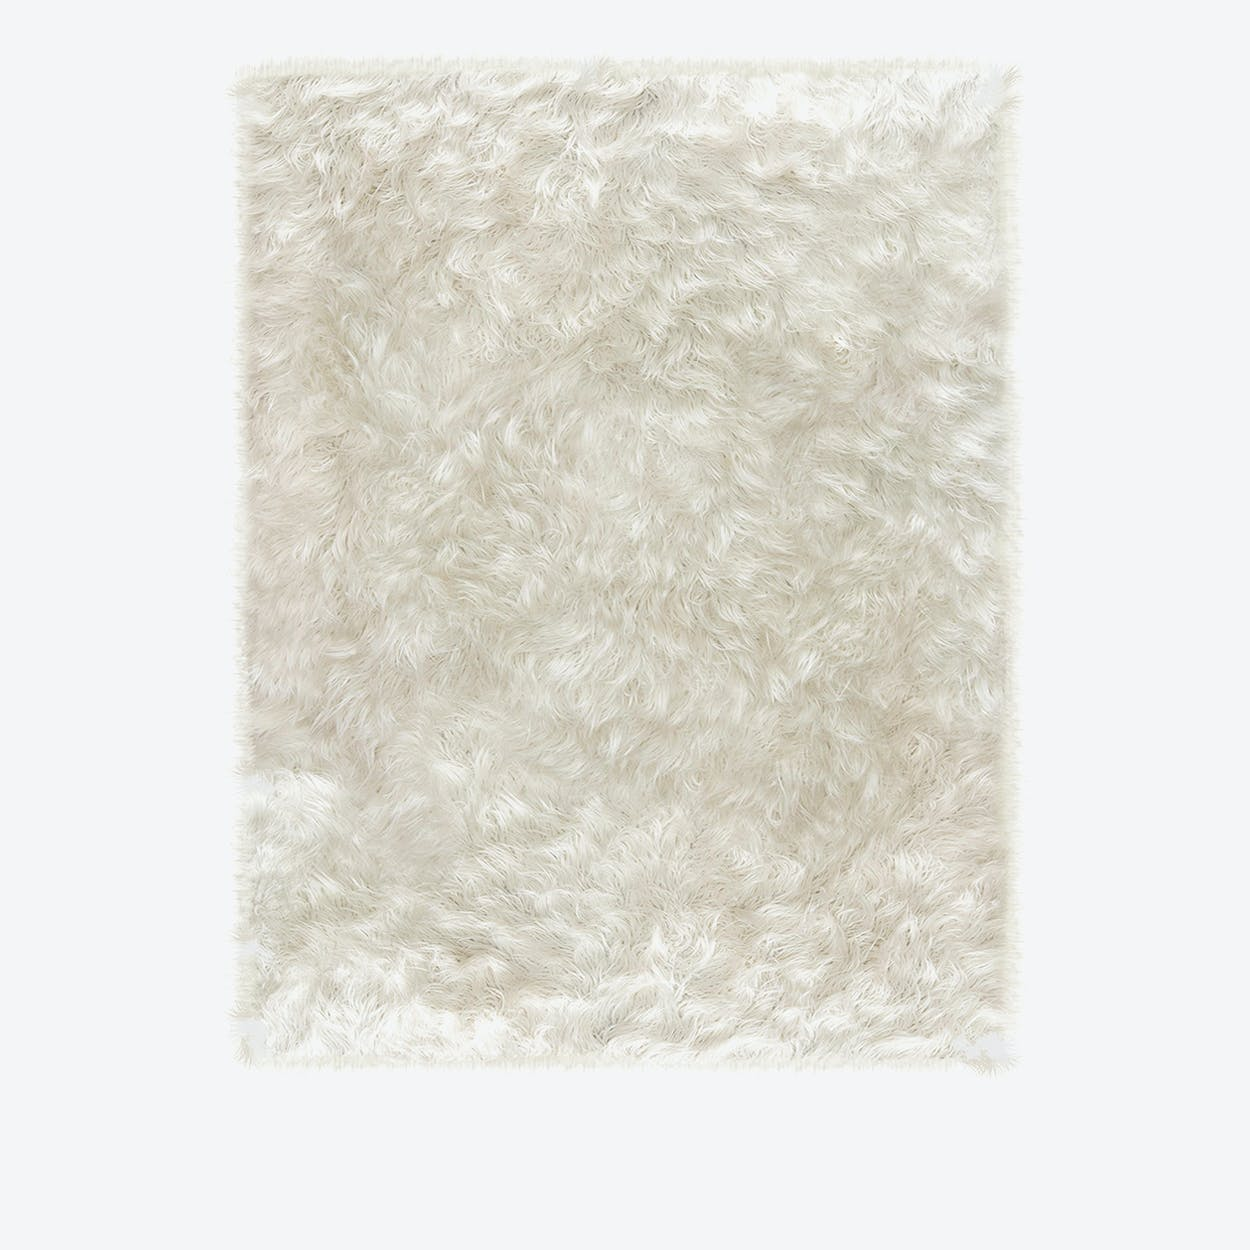 Shag Rug in White